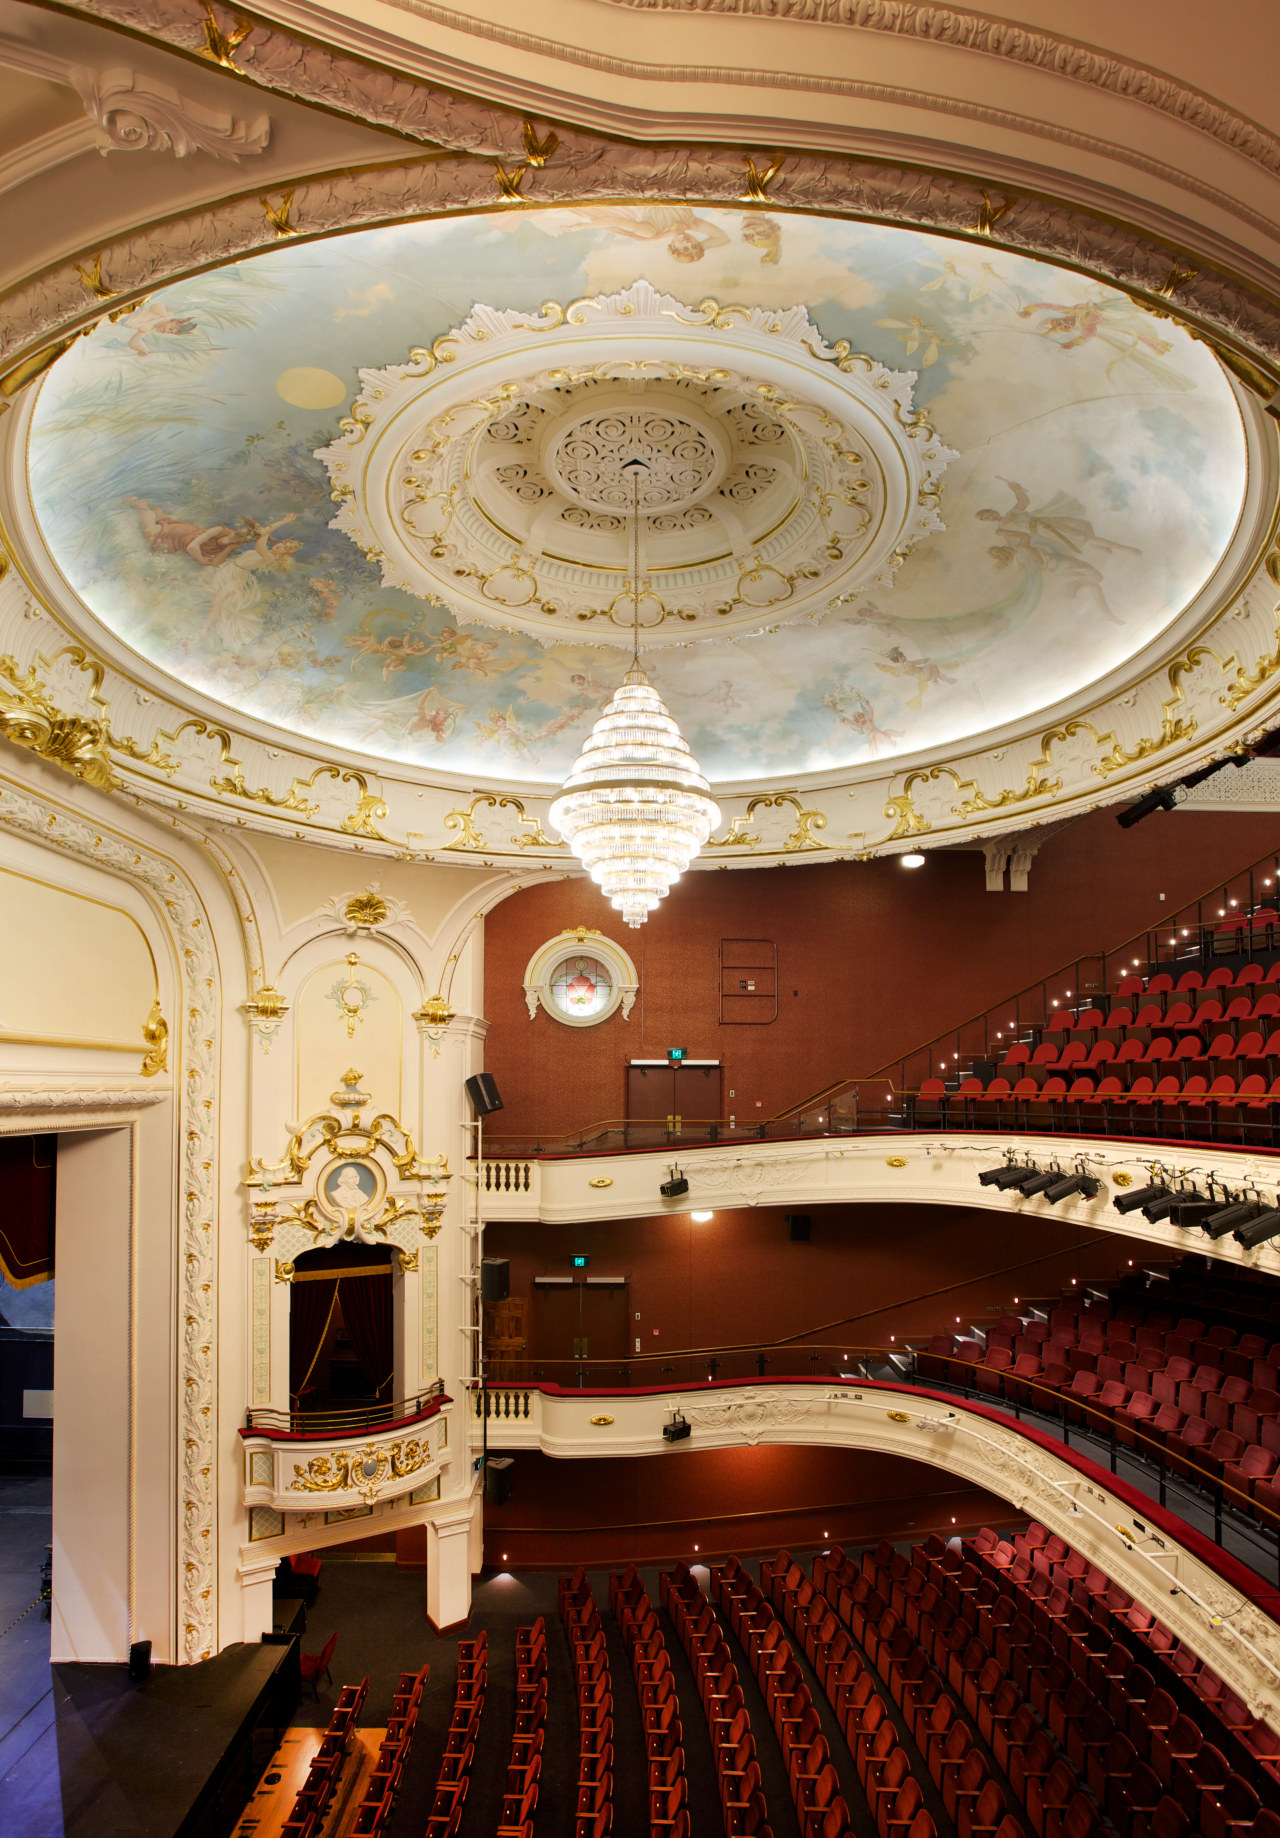 Plaster Services undertook the restoration of the plasterwork architecture, auditorium, ceiling, column, daylighting, interior design, lobby, opera house, performing arts center, symmetry, theatre, wall, orange, red